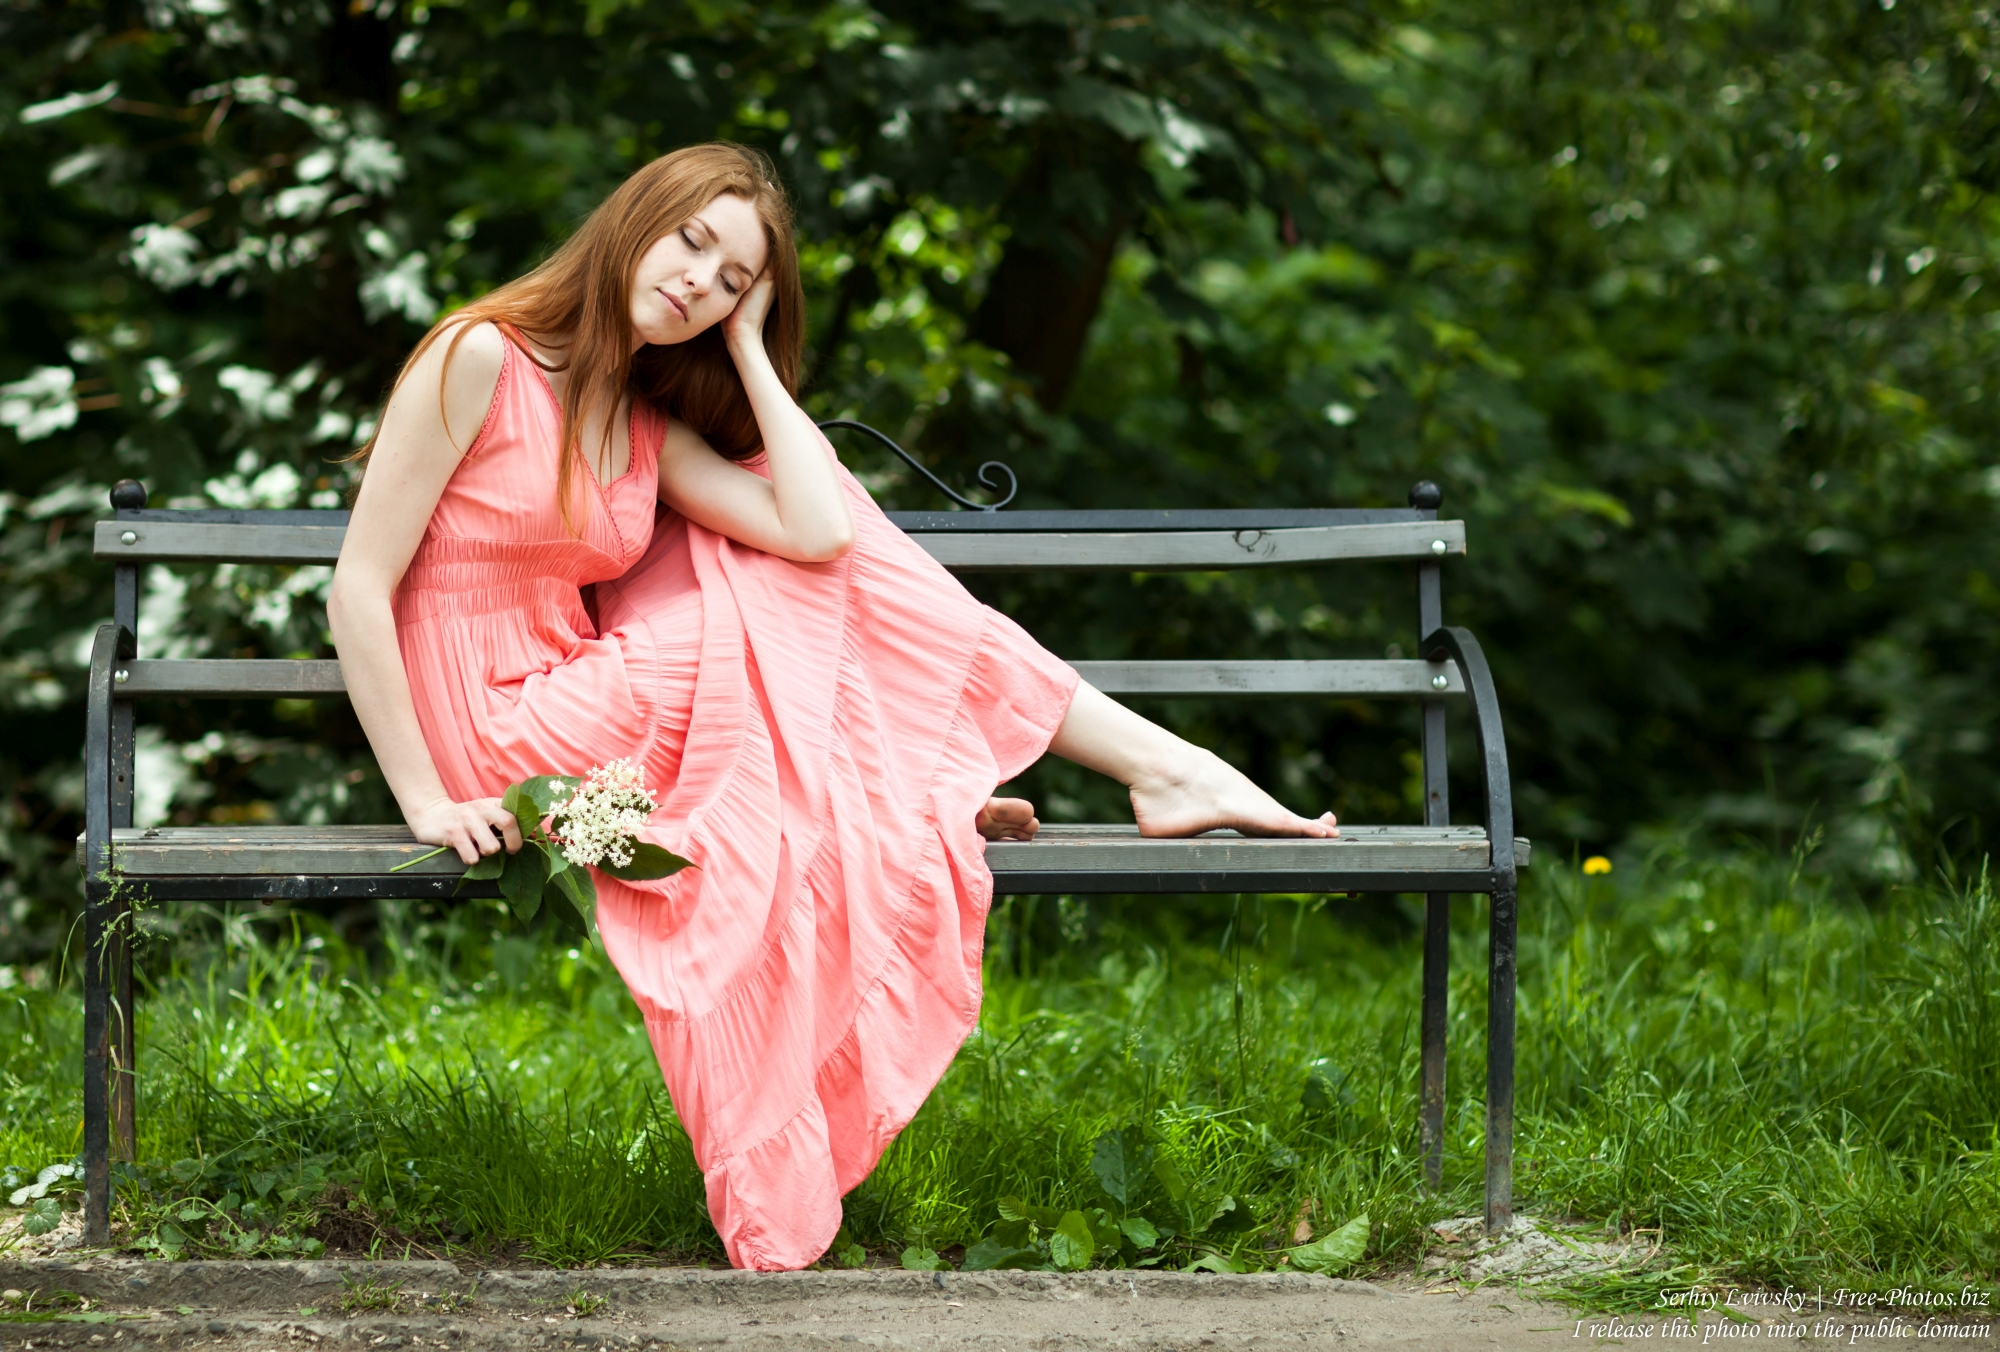 yana_a_23-year-old_girl_with_natural_red_hair_photographed_in_june_2017_by_serhiy_lvivsky_12